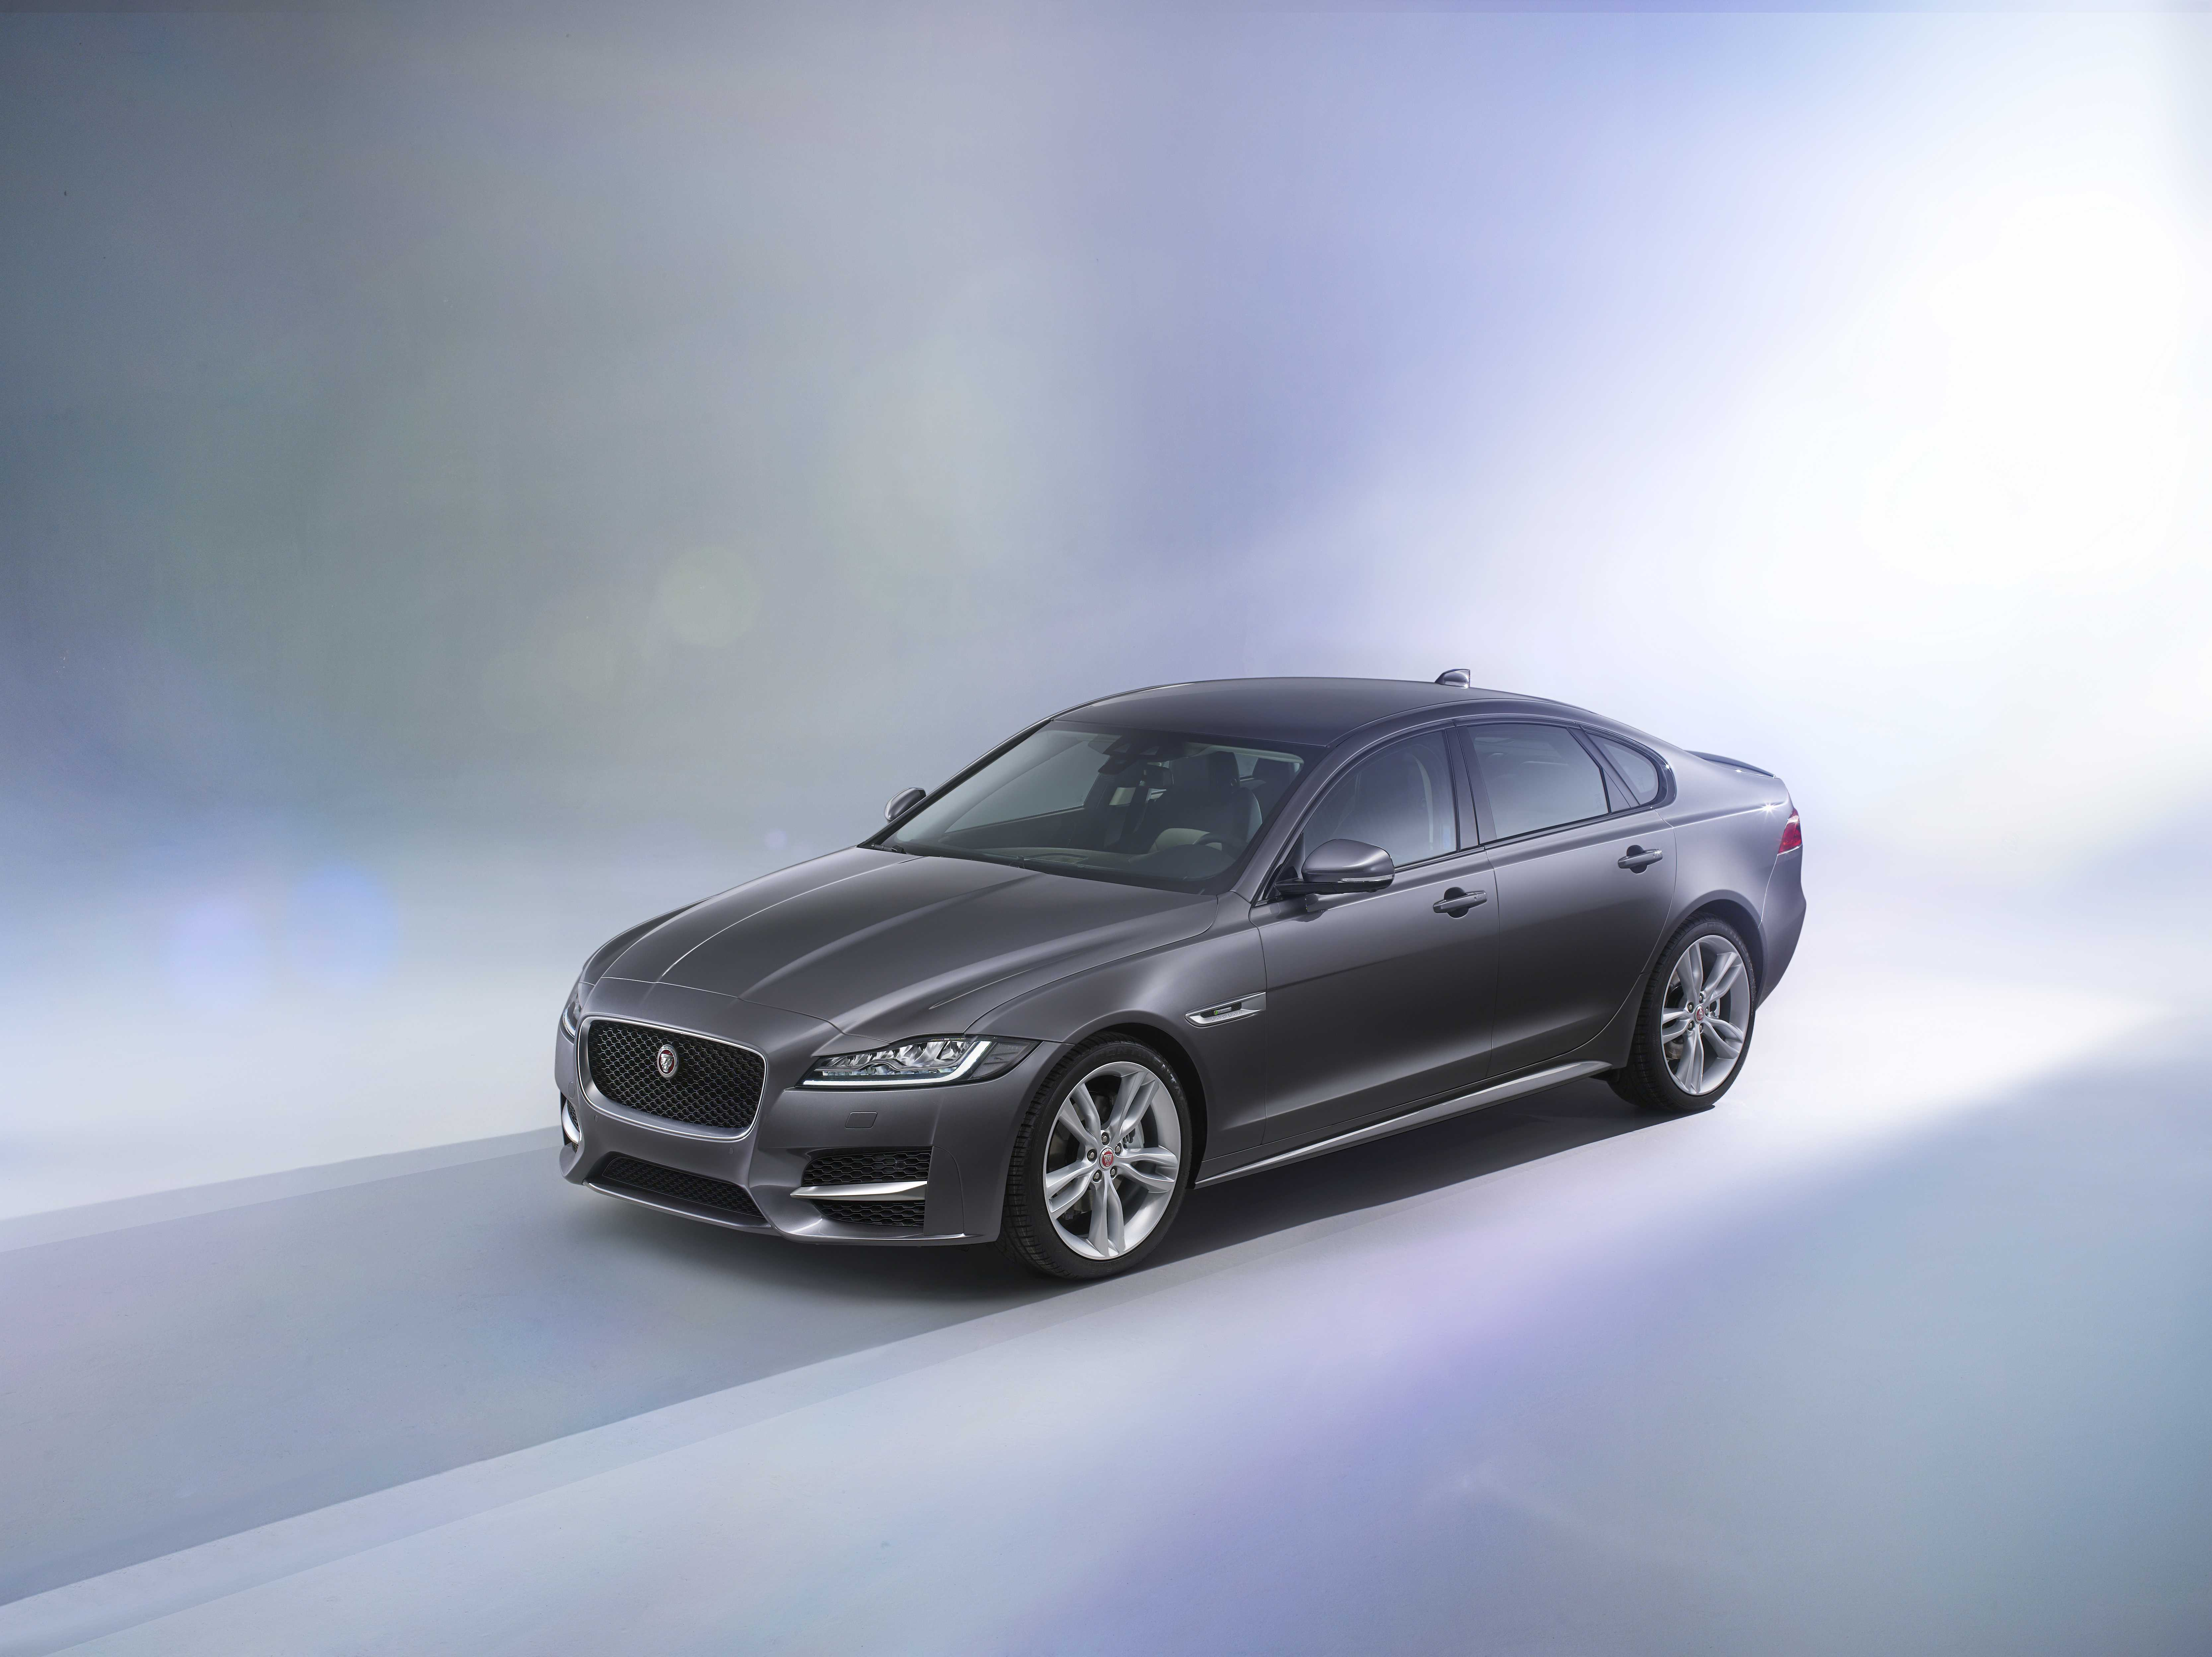 for new sale sedan awd htm specials jaguar near monthly chicago car xf banner naperville of